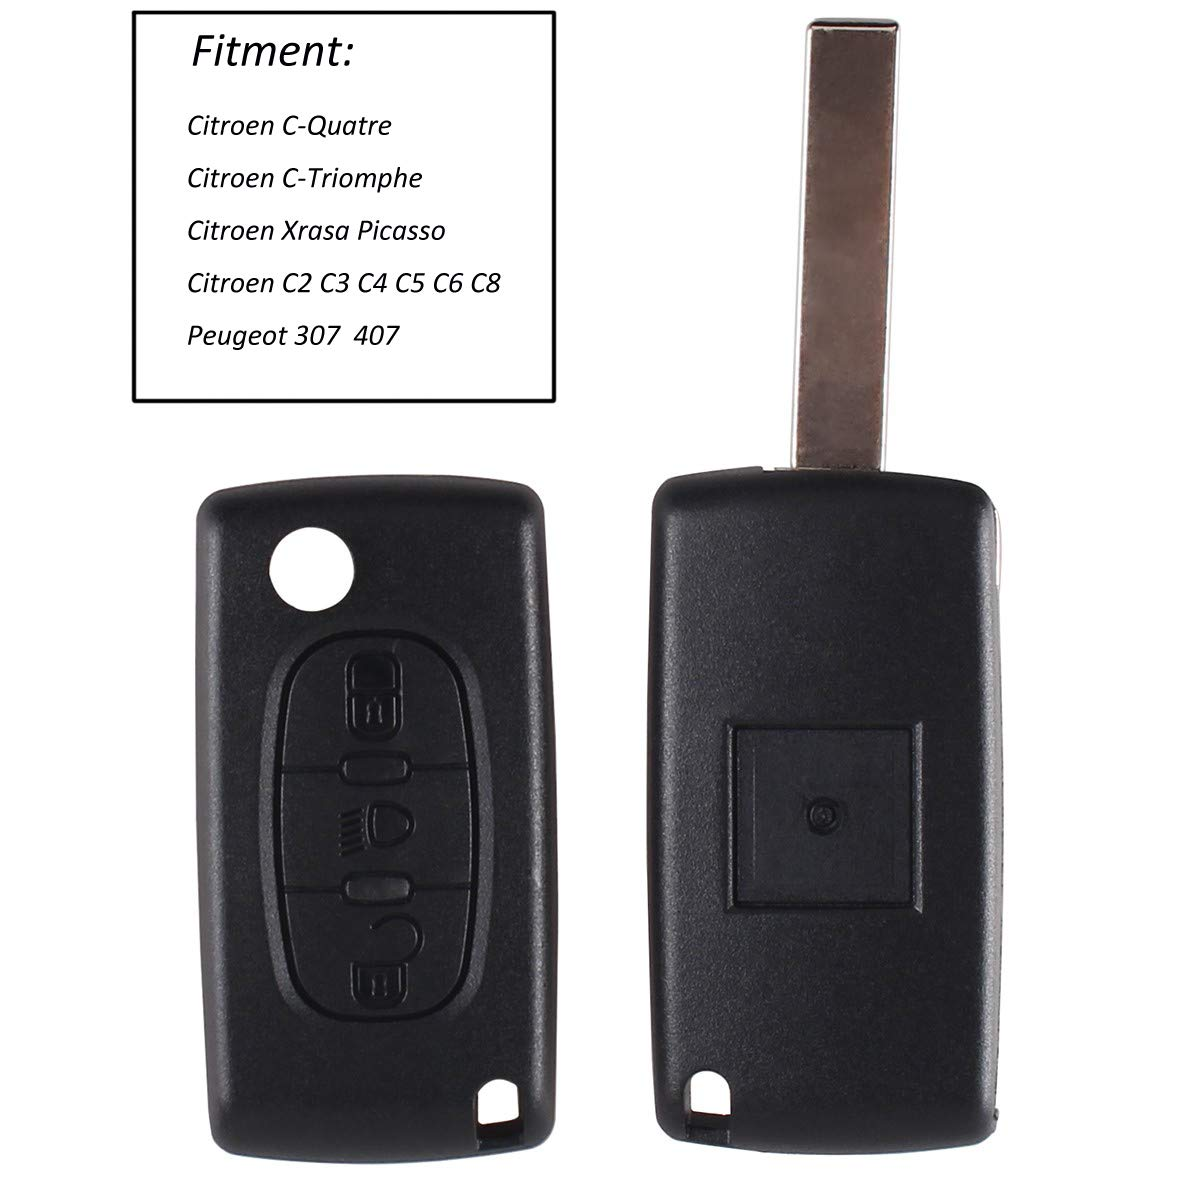 Heart Horse Replacement 3 button flip key fob case Compatible with Citroen  C4 C5 C6 C8 Remote (Has Groove + No Battery Holder)